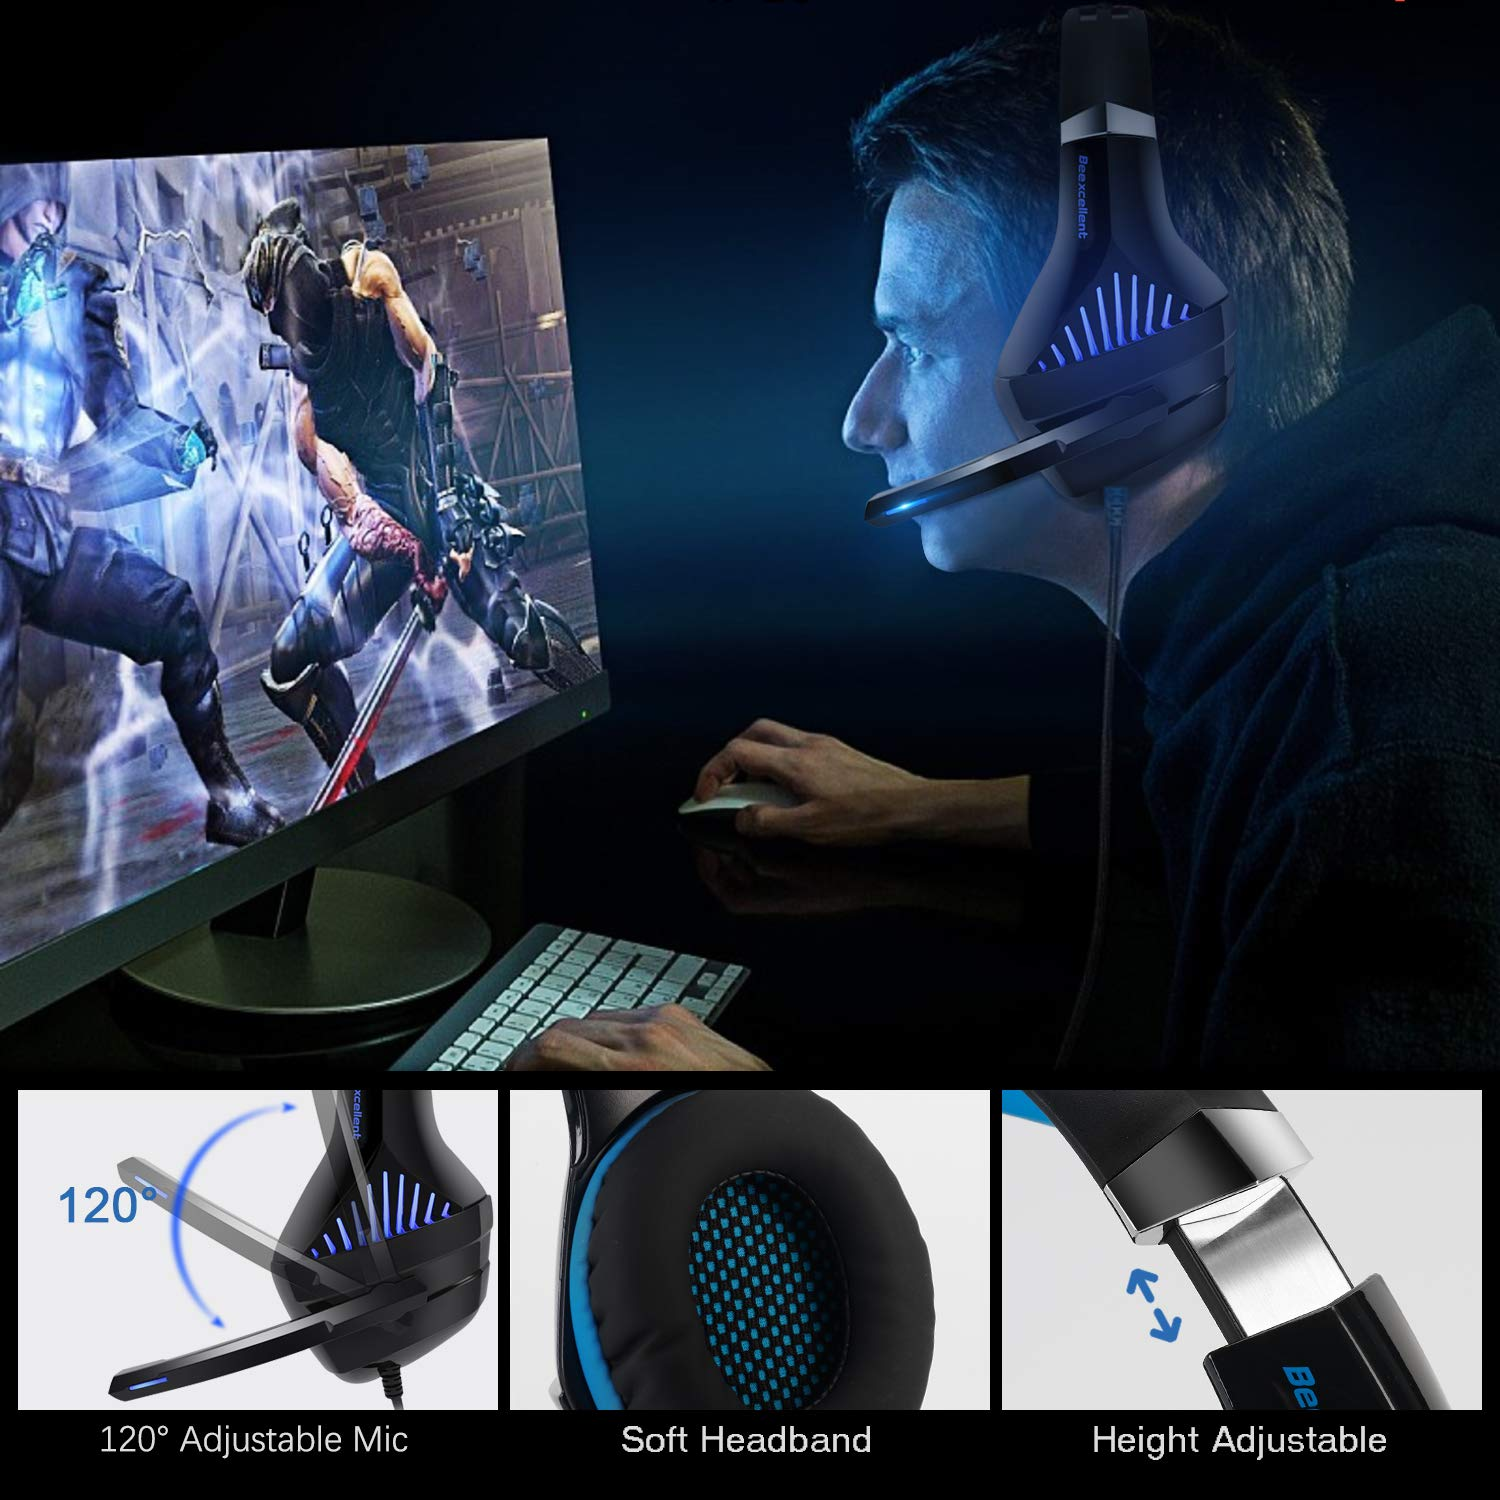 Gaming Headset,OfficeLead Stereo Headphones for Laptop,Tablet,PS4, PC, Xbox One Controller, Noise Cancelling Over Ear Headset with Mic, LED Light, Bass Surround by MMUSC